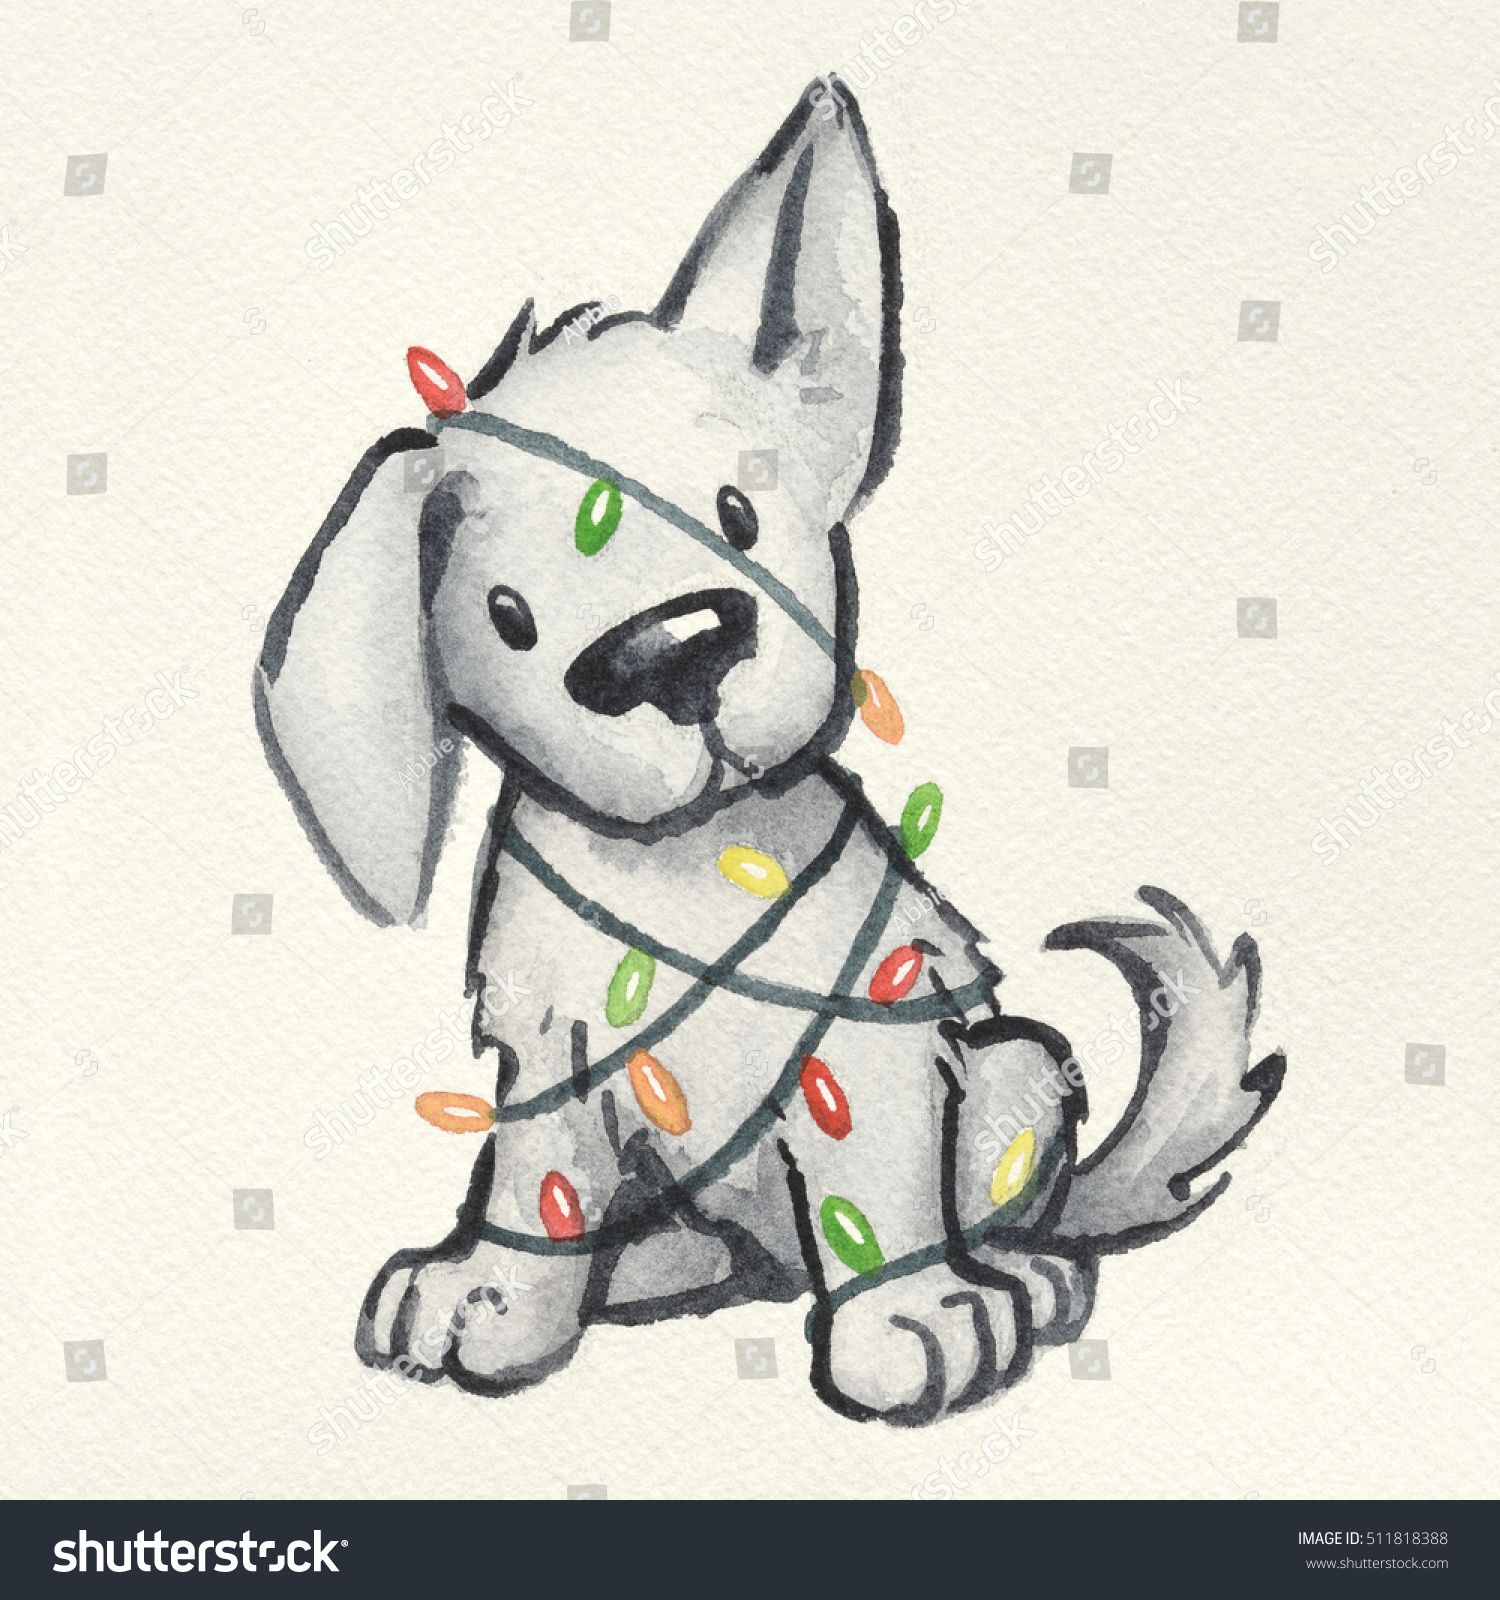 Pin By Amy Lyons On Design Illustration Cute Dog Drawing